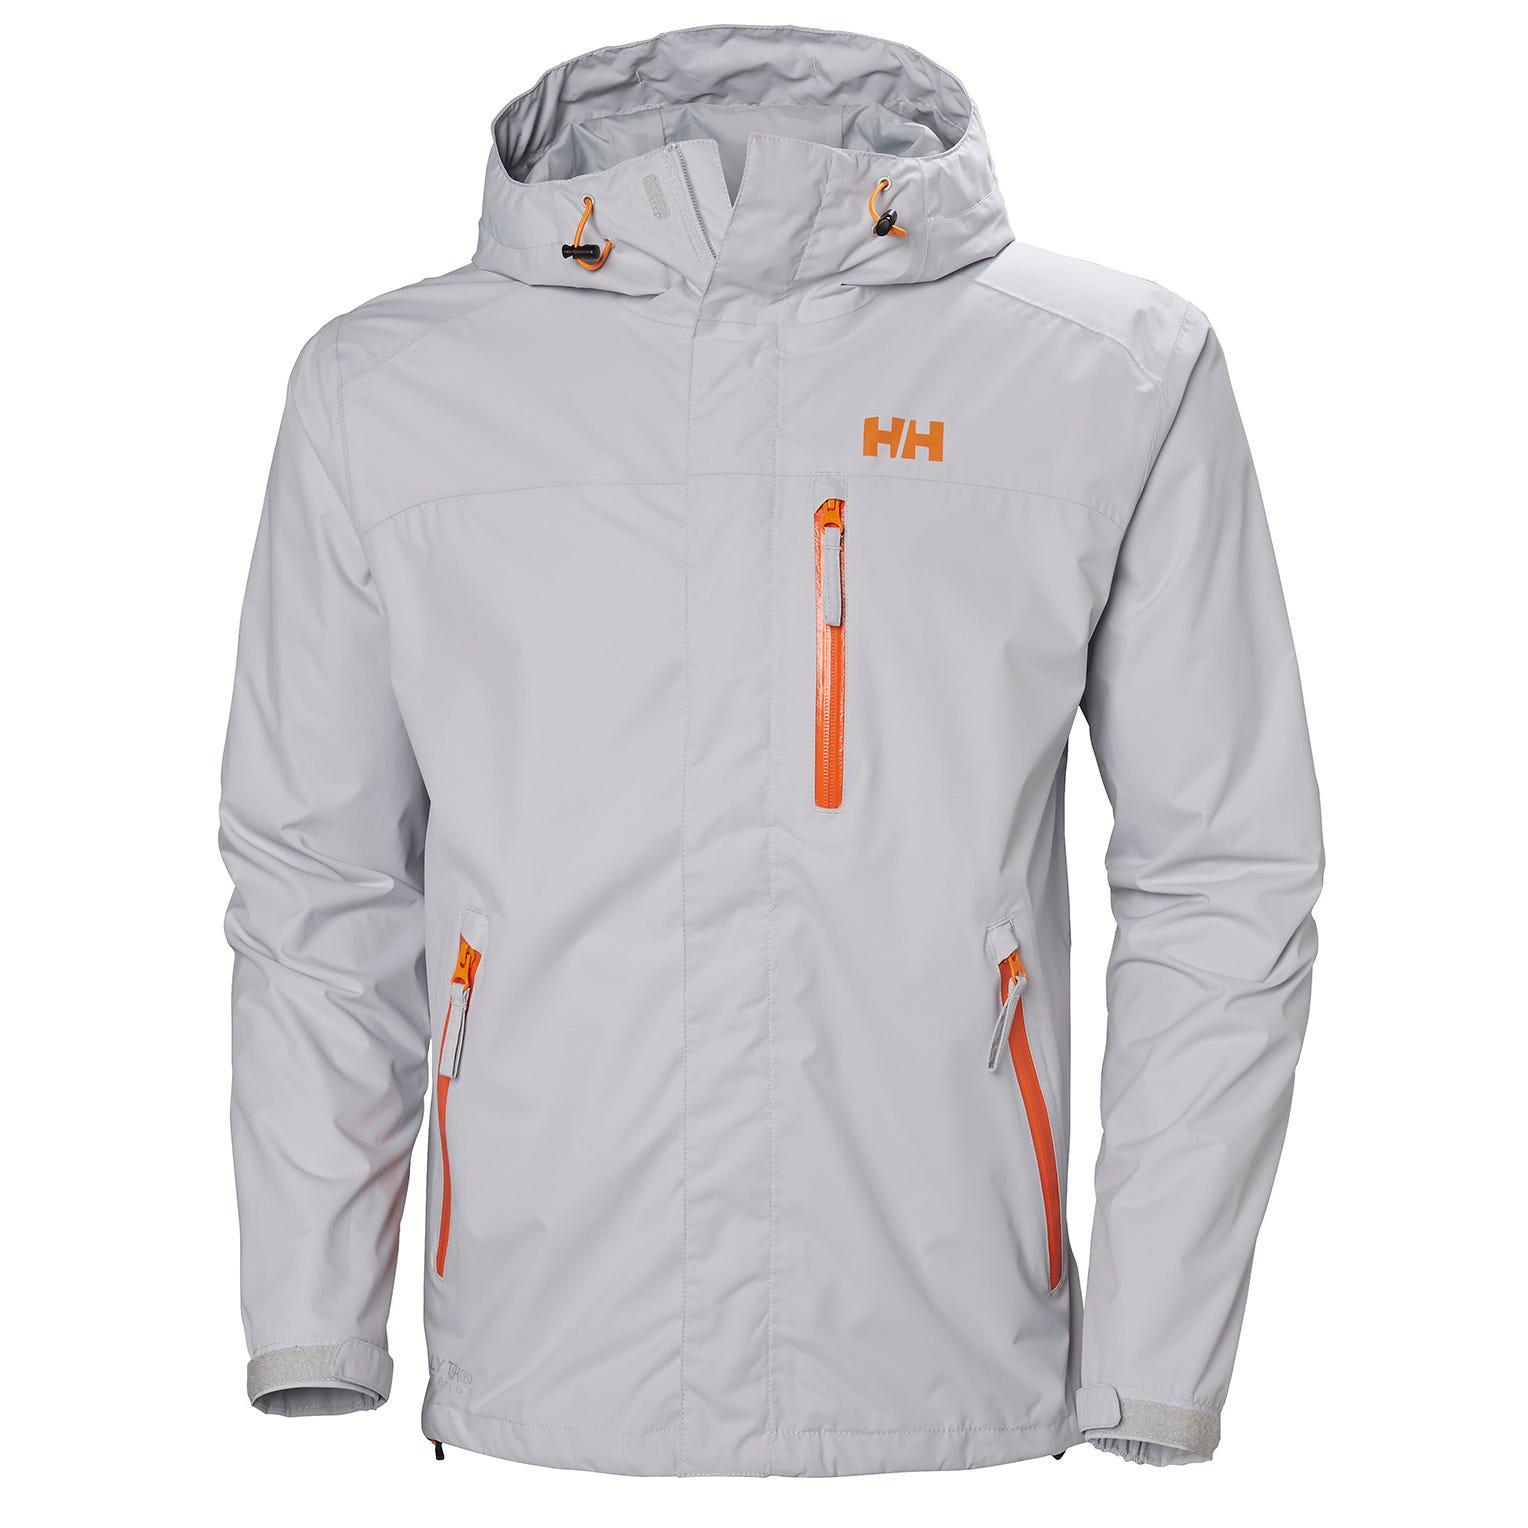 044a0fef Vancouver Jacket | Mens Shell Outdoor Rain Jacket | HH US